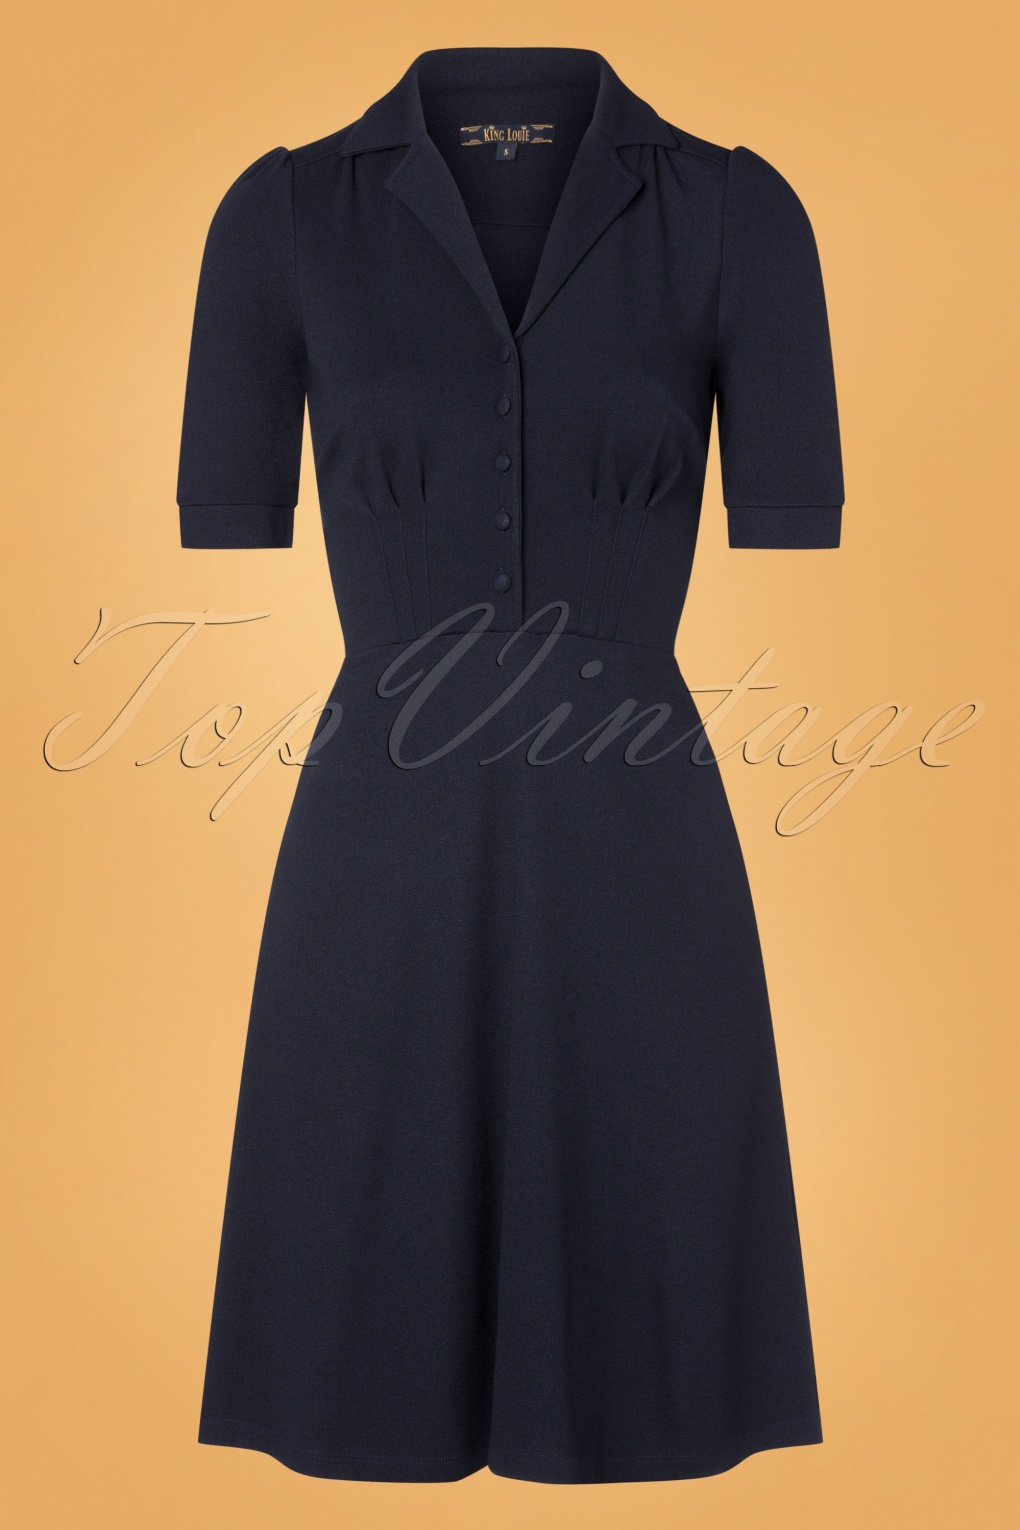 Vintage Shirtwaist Dress History 40s Milano Diner Crepe Dress in Sapphire Blue £90.49 AT vintagedancer.com